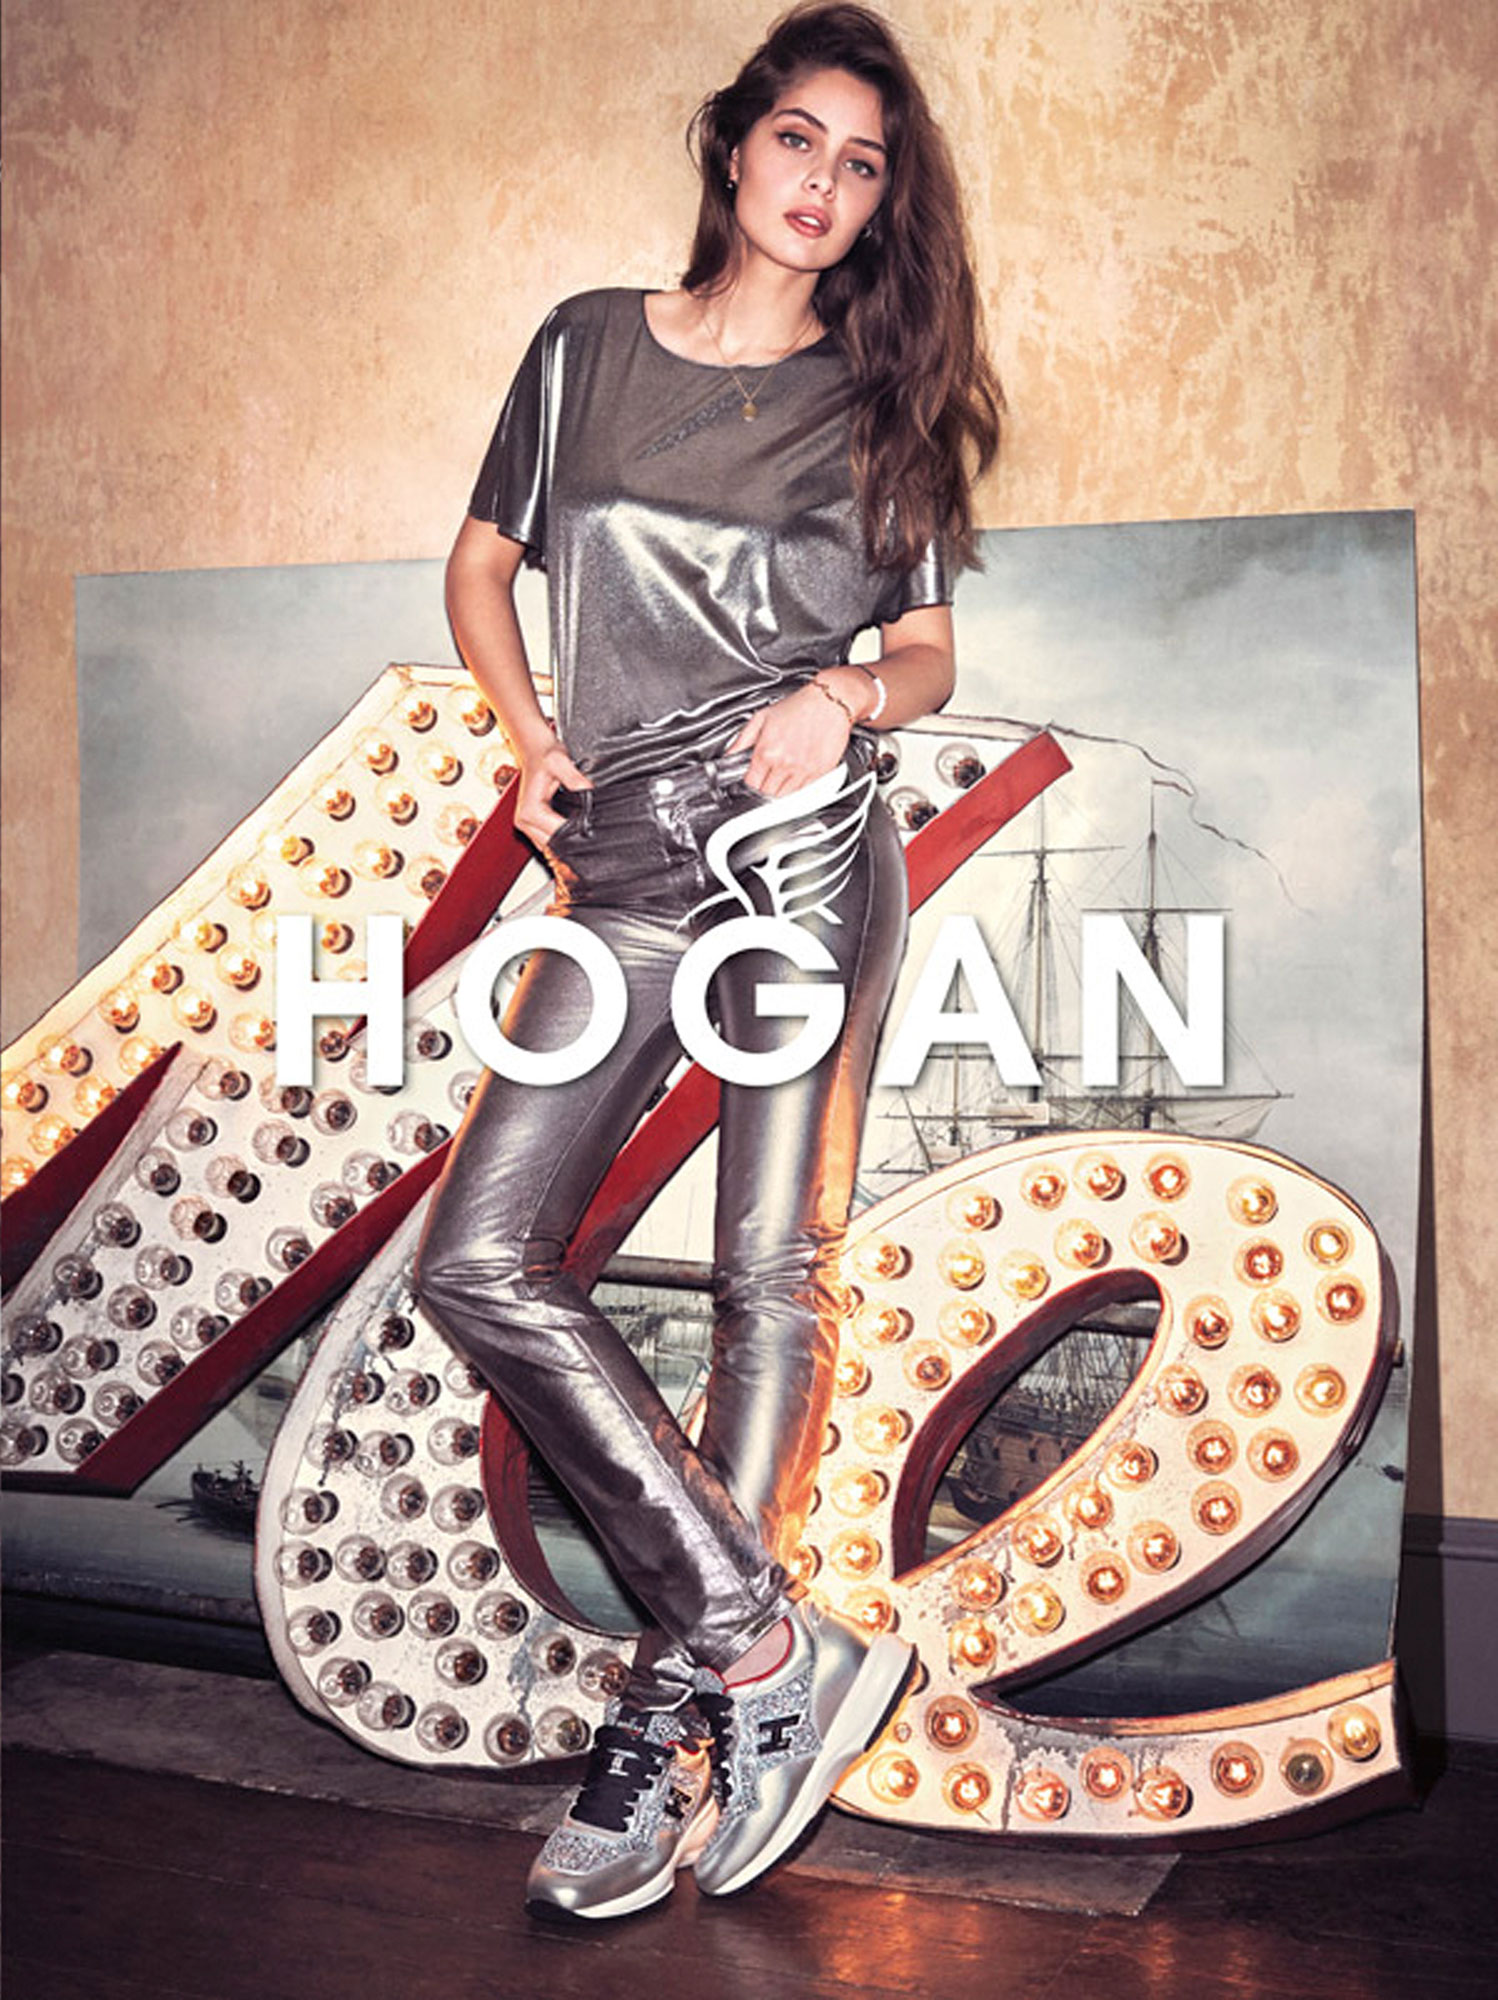 Hogan Campaign SS 2016 | Michelangelo di Battista | Hogan | C Magazine | Andrea Tenerani | Numerique Retouch Photo Retouching Studio